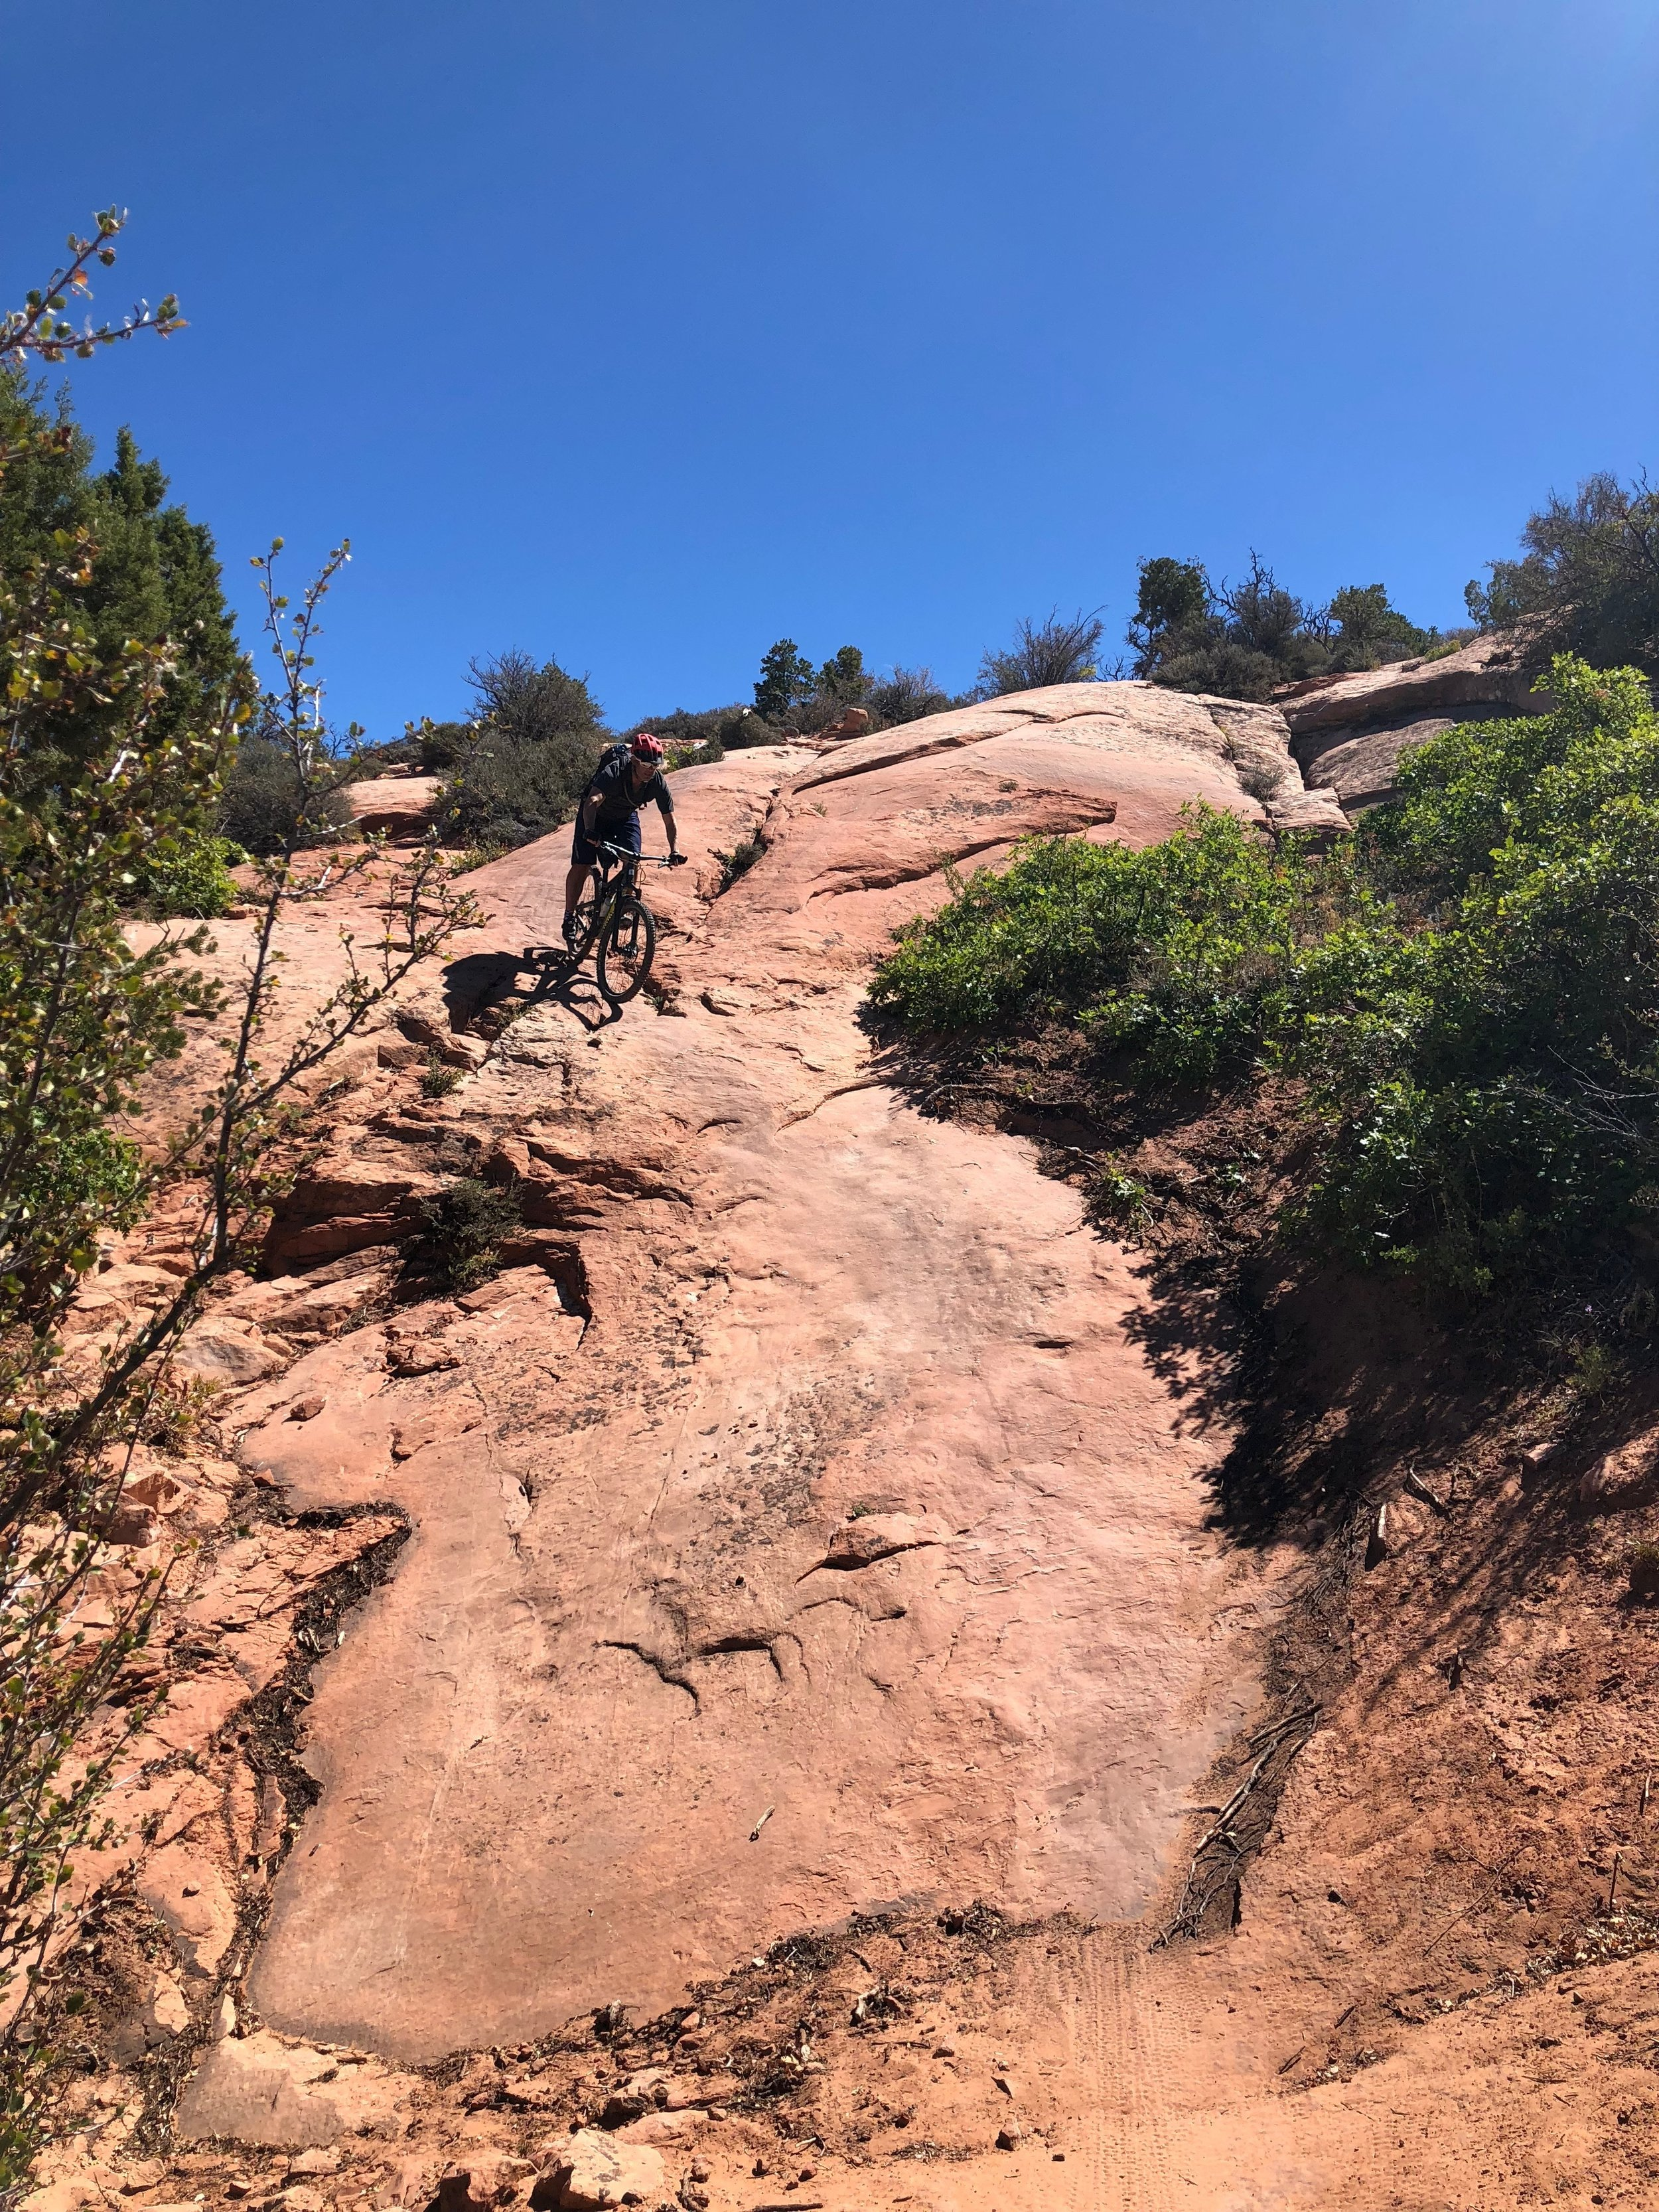 The final descent into Moab follows Porcupine Rim, a fun, technical trail with a bit of exposure in places.